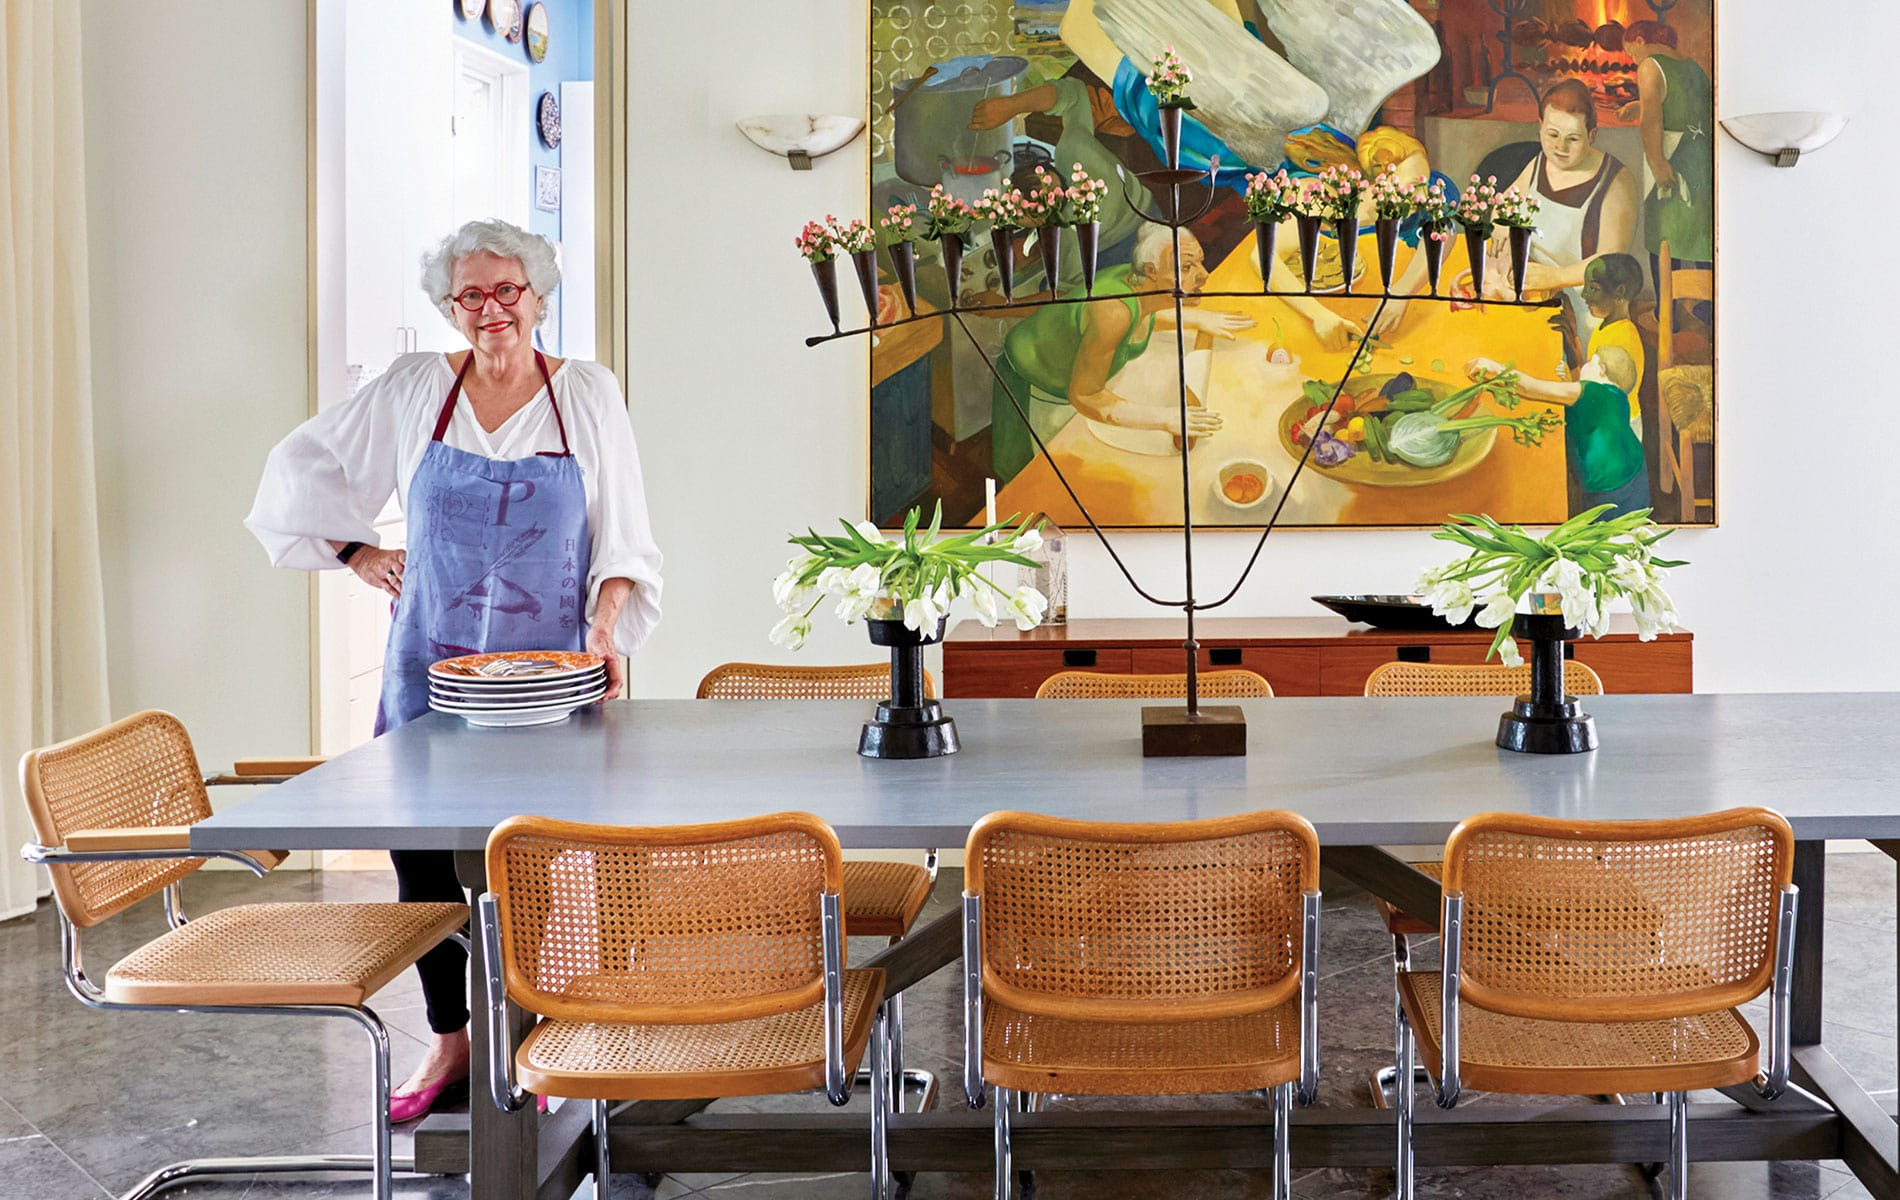 Paula Lambert standing in her dining room with flatware to arrange on her table at her Turtle Creek home in Dallas, Texas